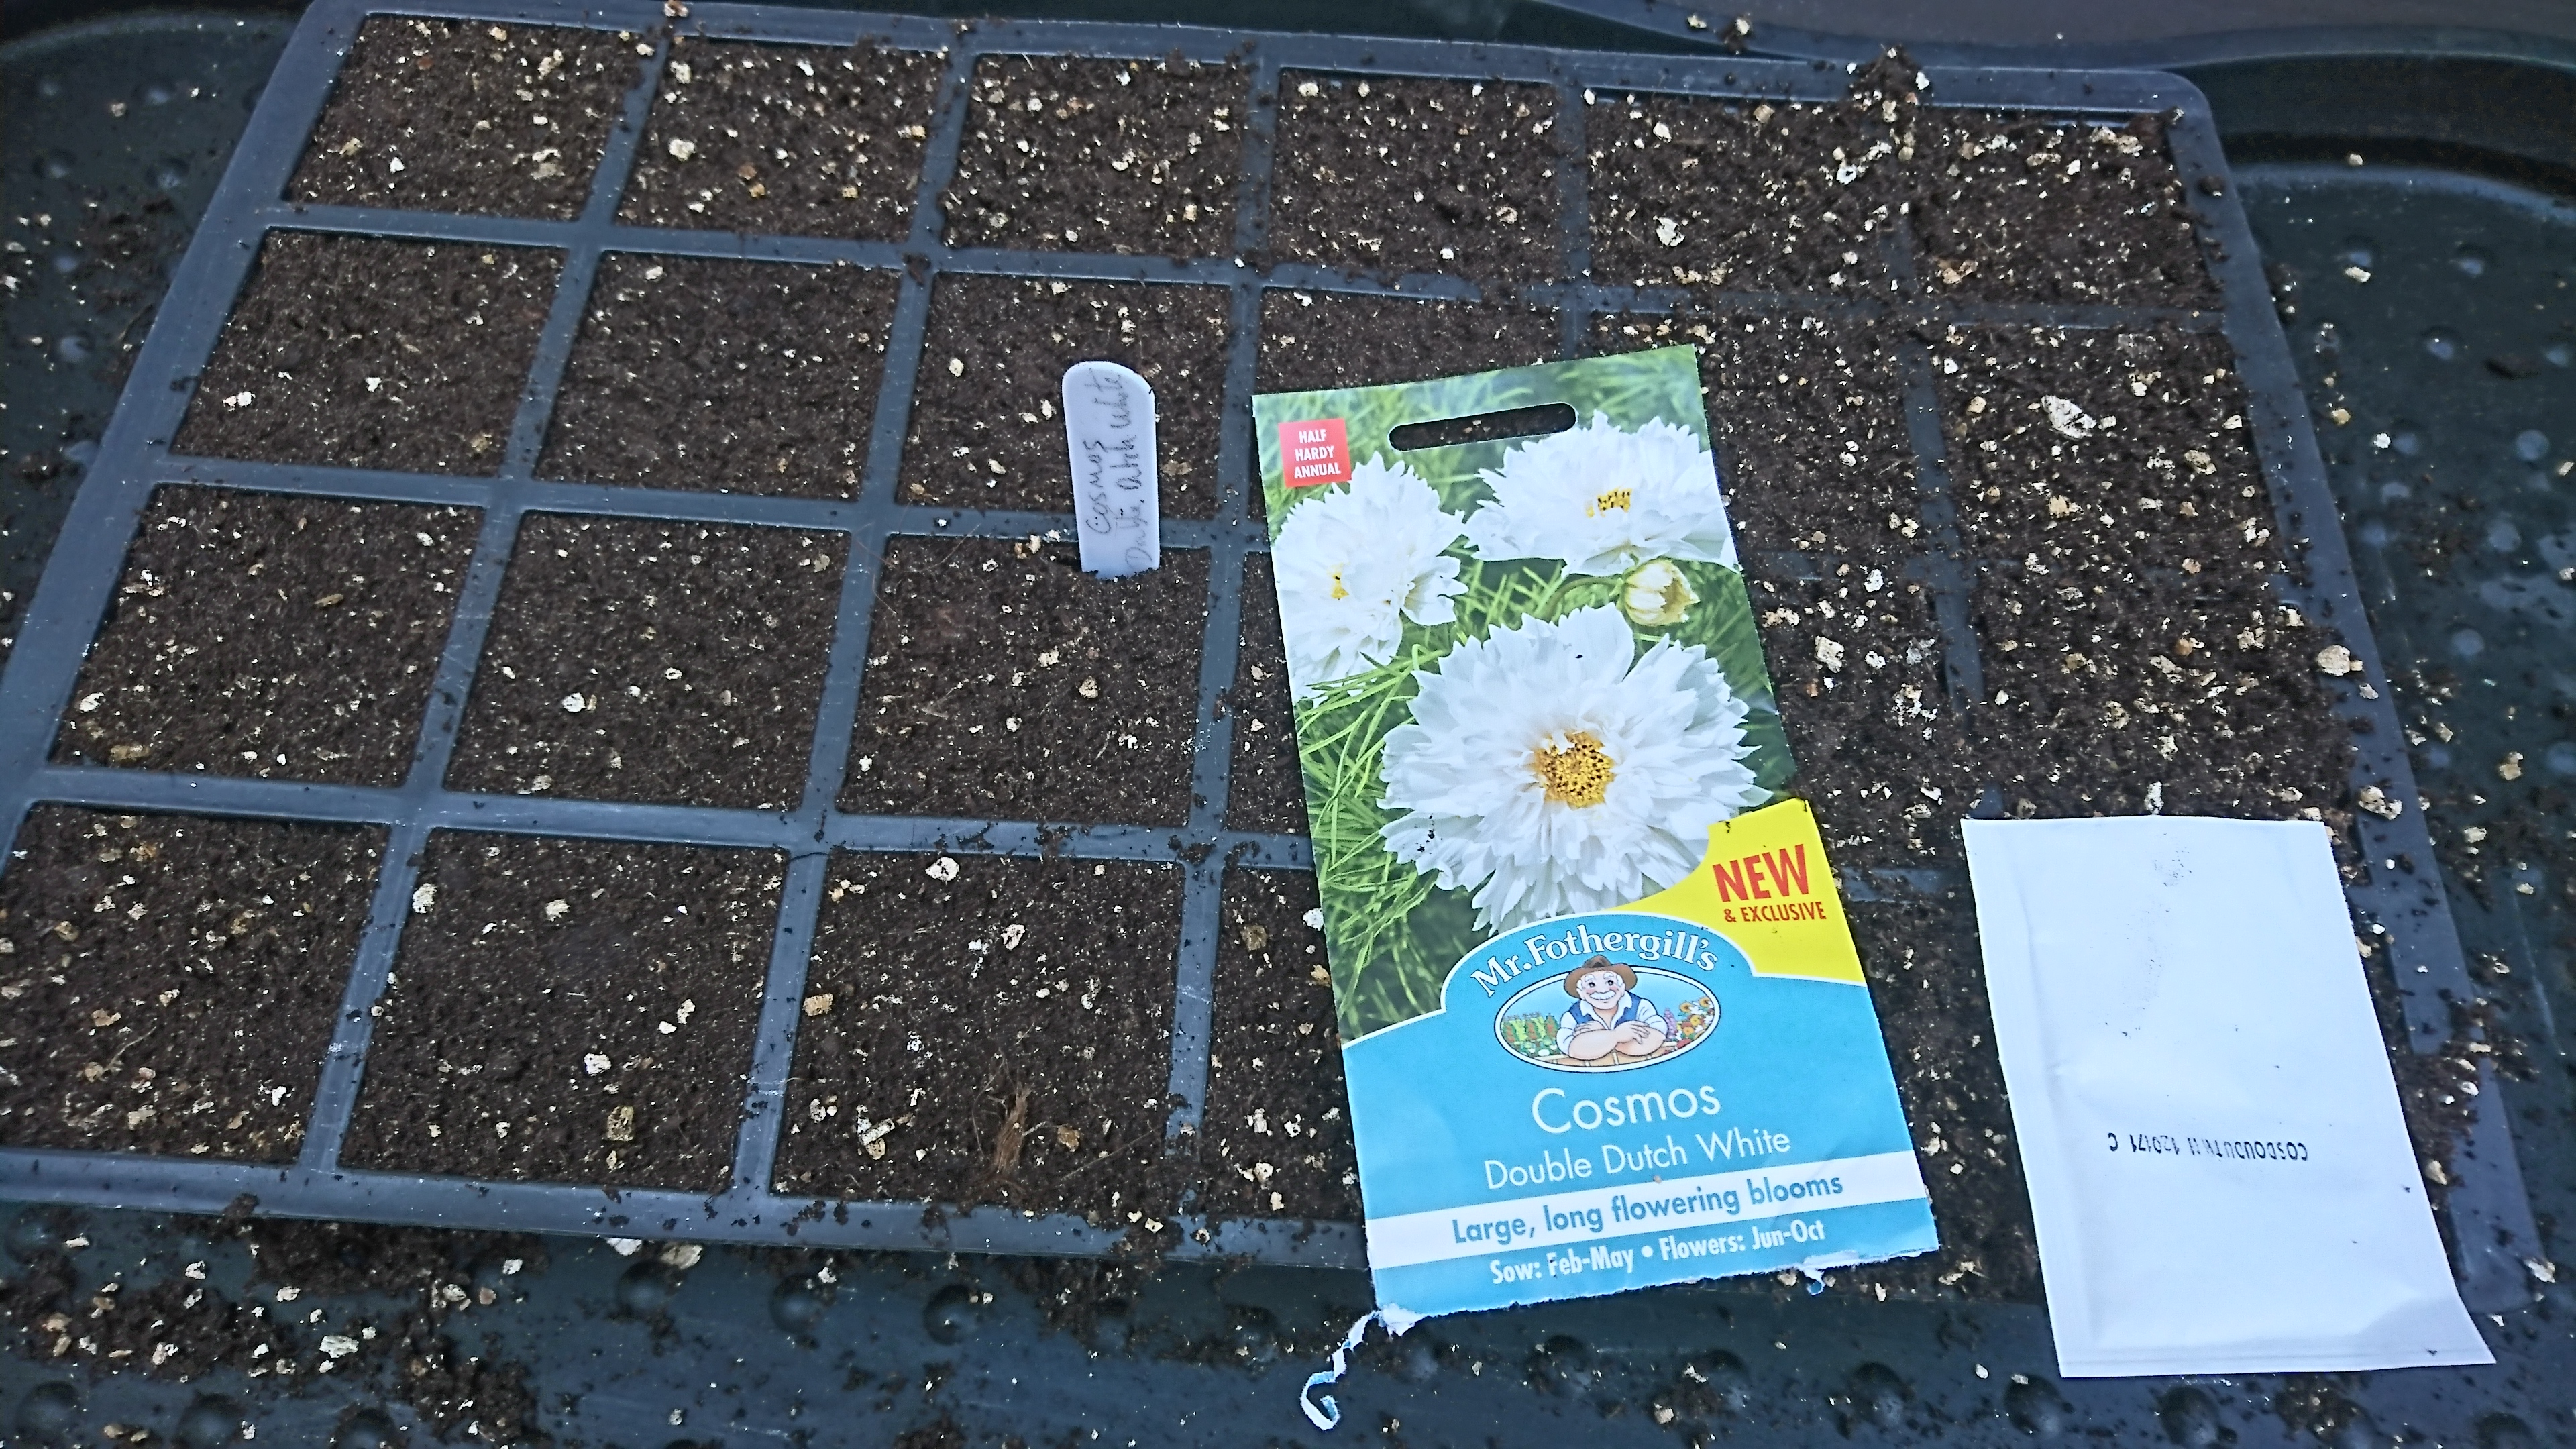 Mr Fothergill's Seed Trial – Cosmos – Double Dutch White